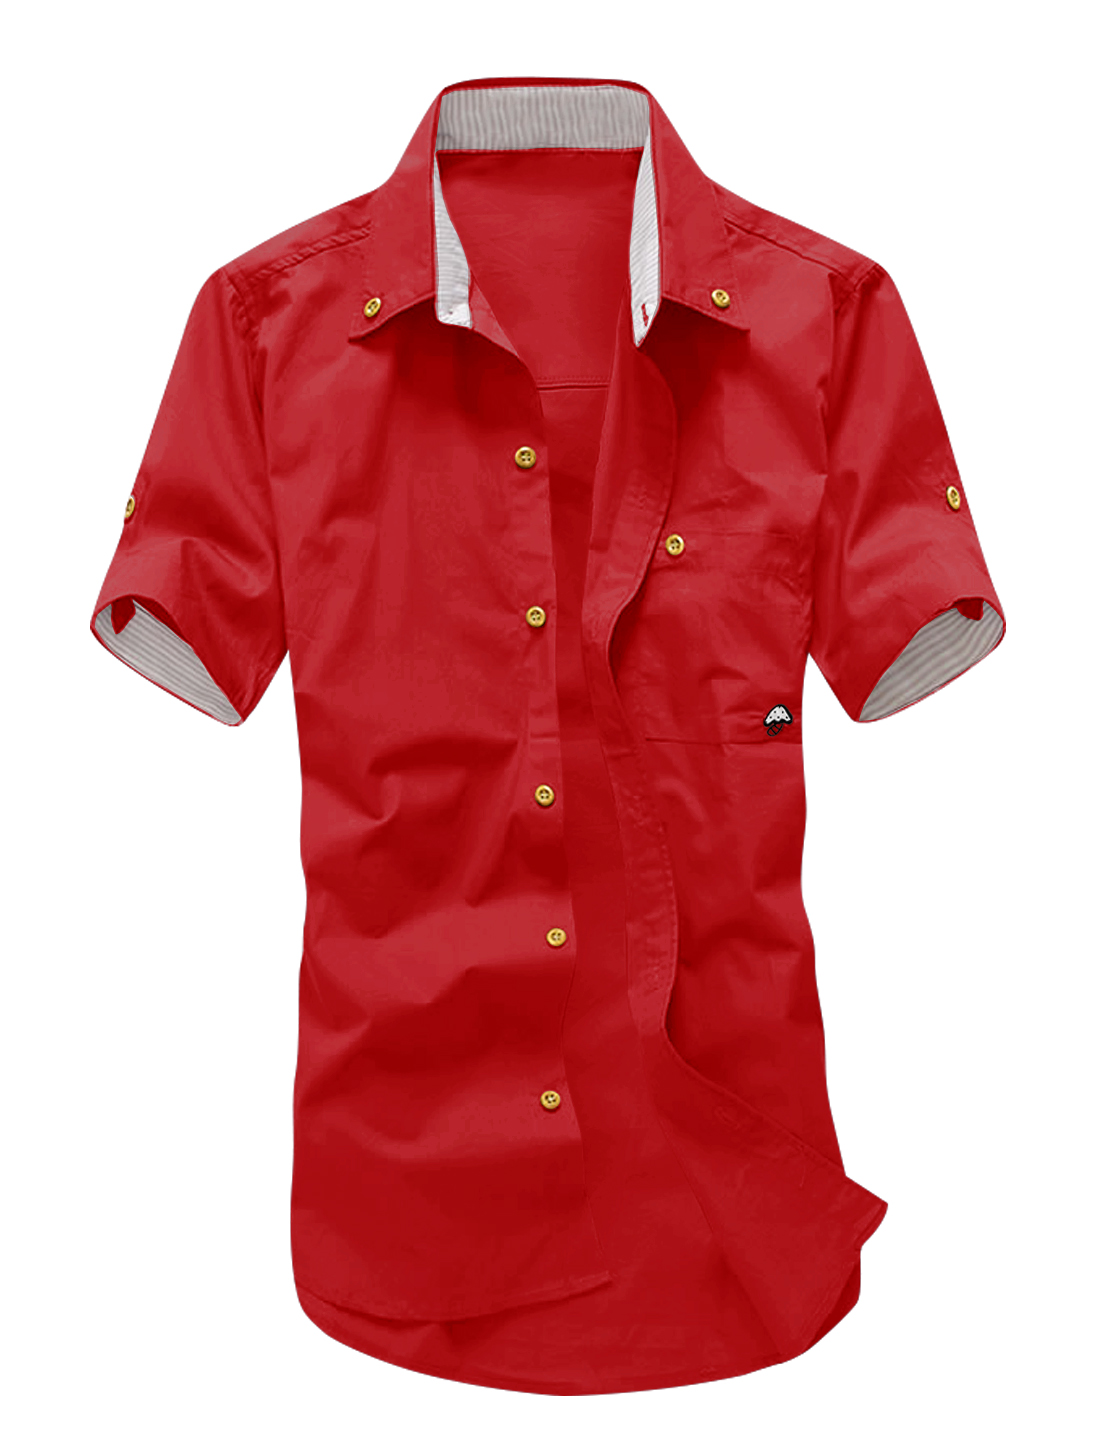 Man Short Sleeves Mushroom Embroidery Button Down Shirt Red M